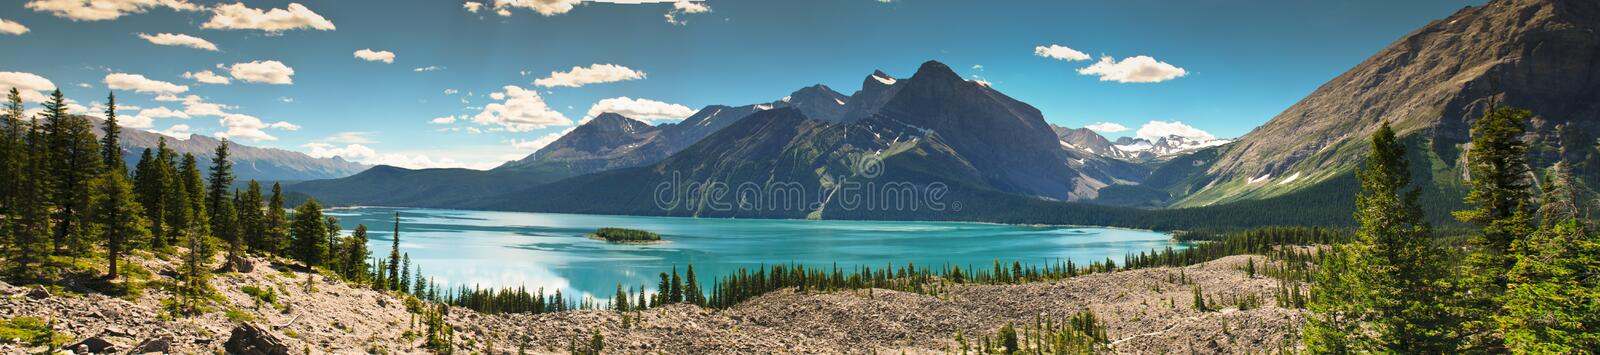 Szenisches Mountain Viewen Kananaskis-Land Alberta Kanada stockfotografie